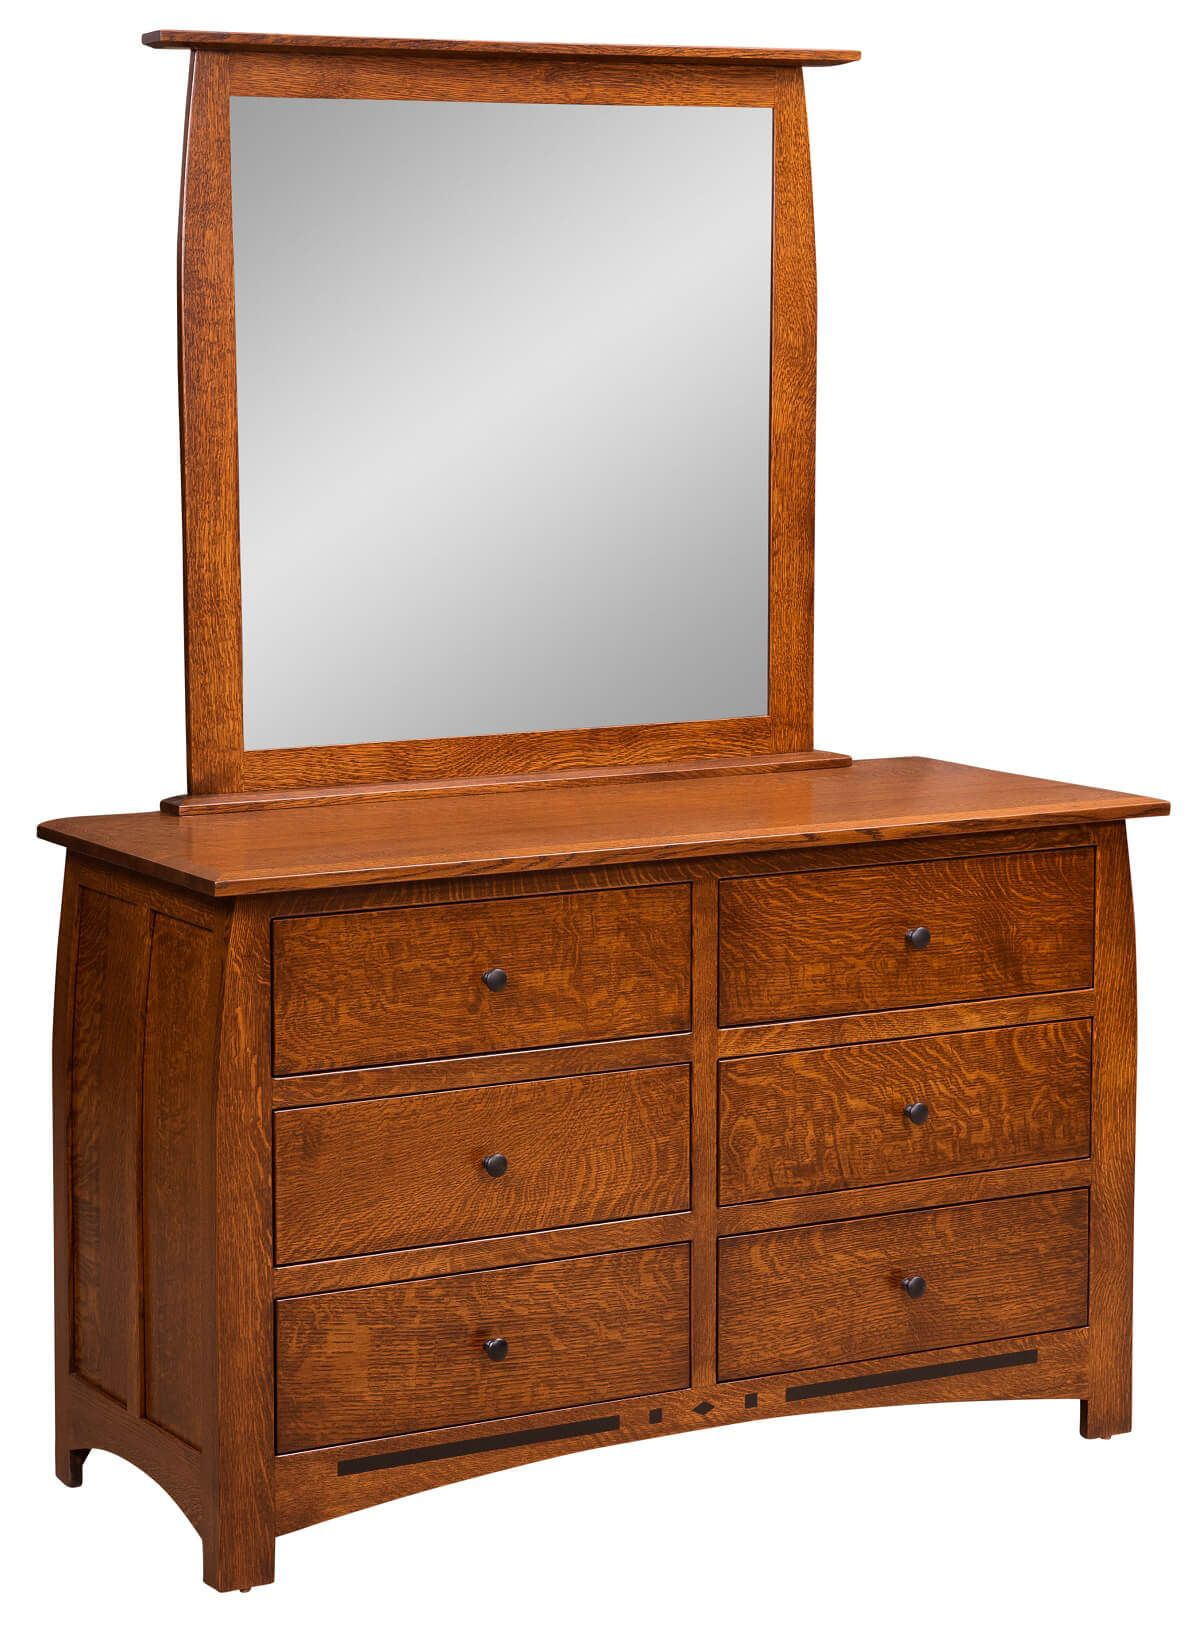 Boulder Creek Mirror Dresser in Quartersawn White Oak